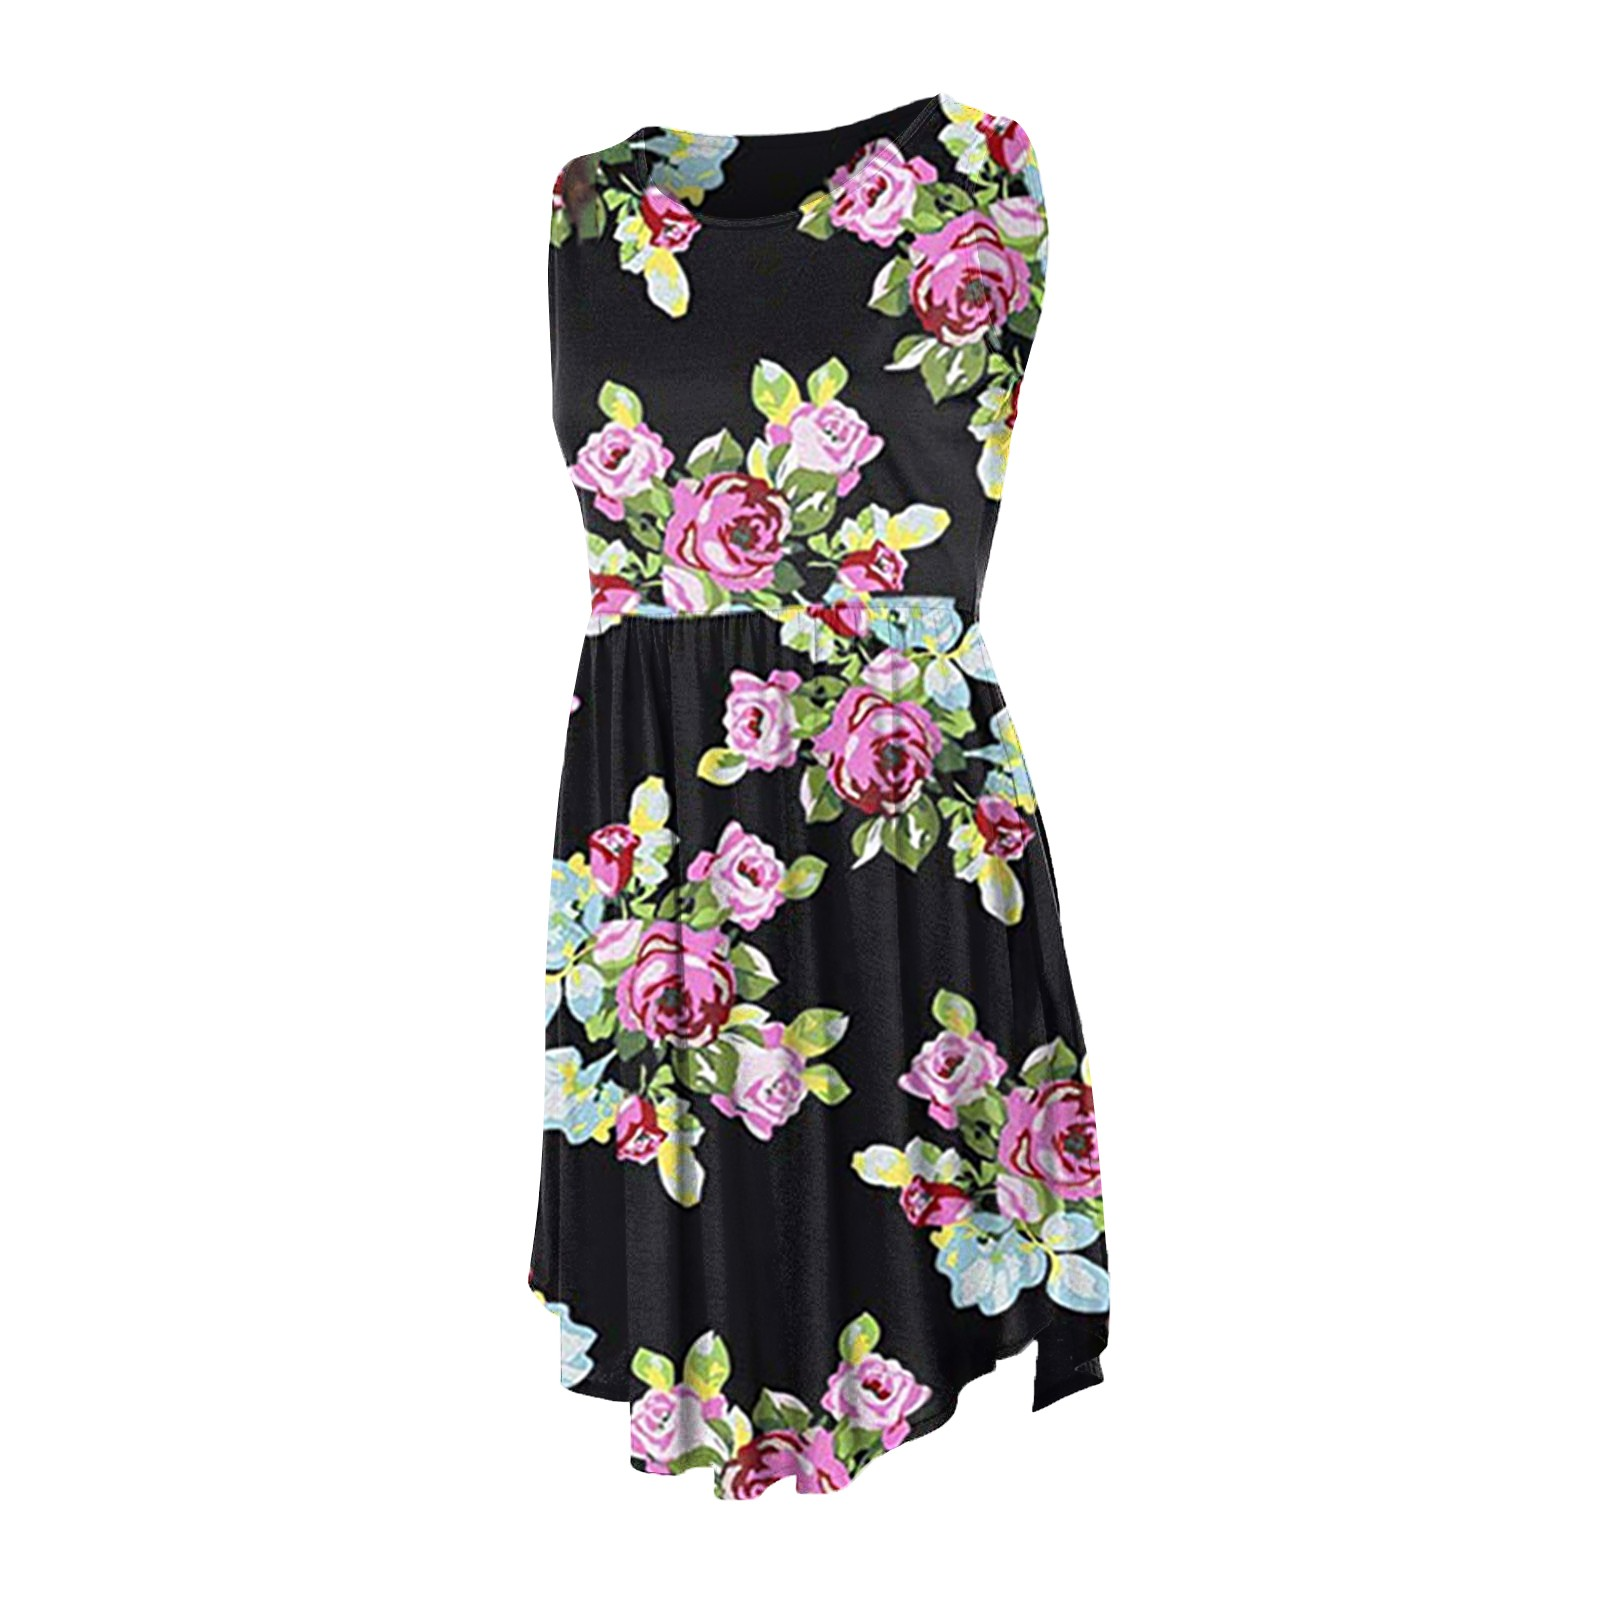 Women's Summer Sleeveless Casual Dresses Swing Cover Up Elastic Sundress with Pockets 6